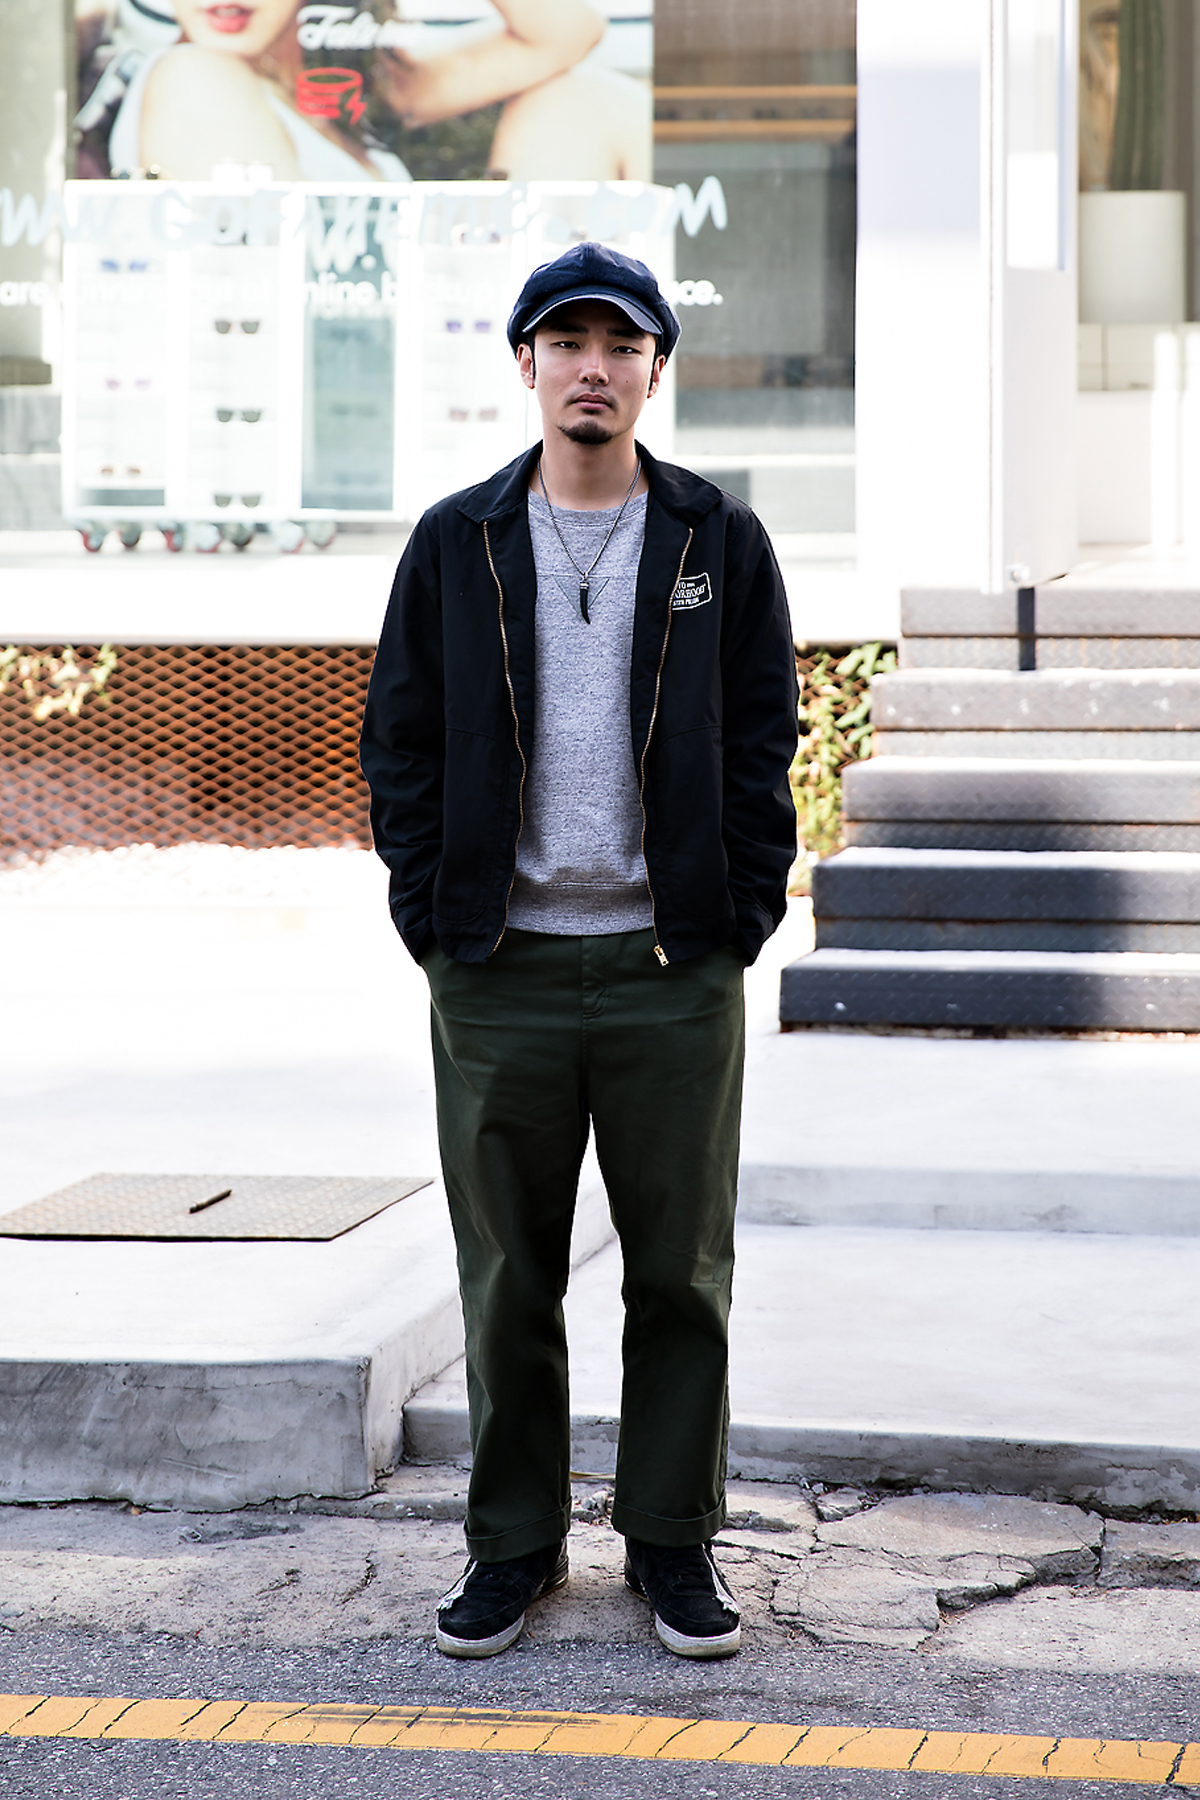 Jeon Juyoung, Street style men fall 2017 in seoul